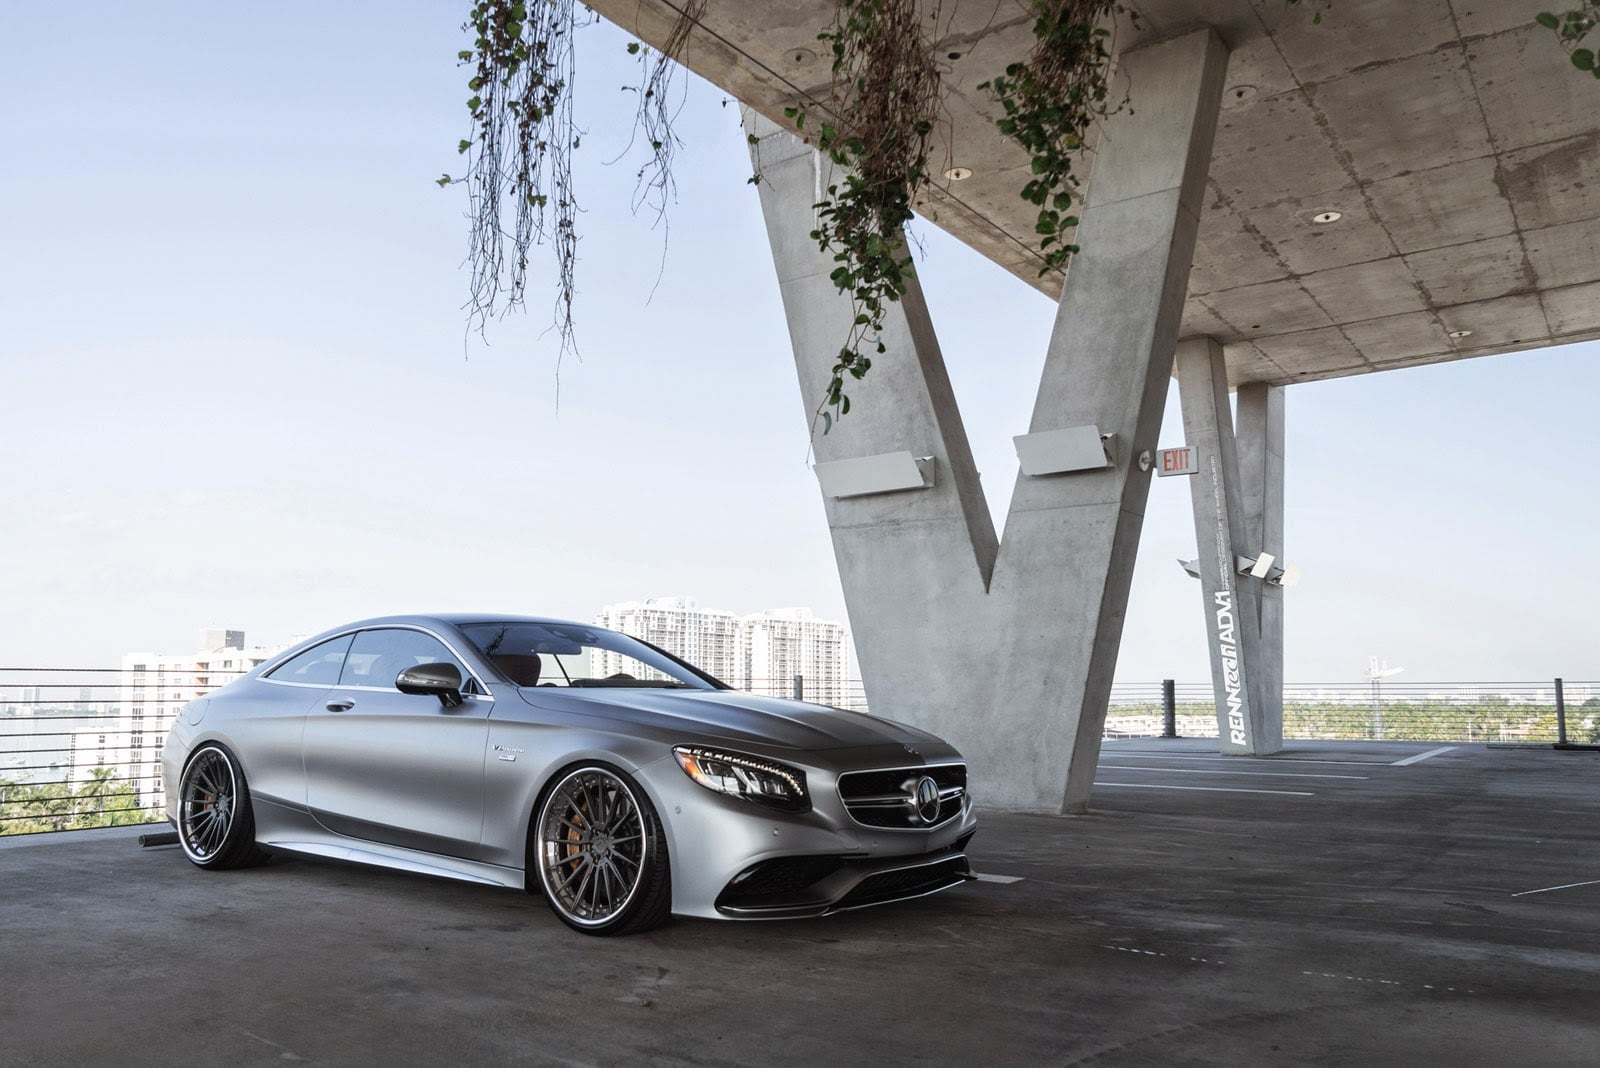 Mercedes AMG S63 Coupe HD pic for PC